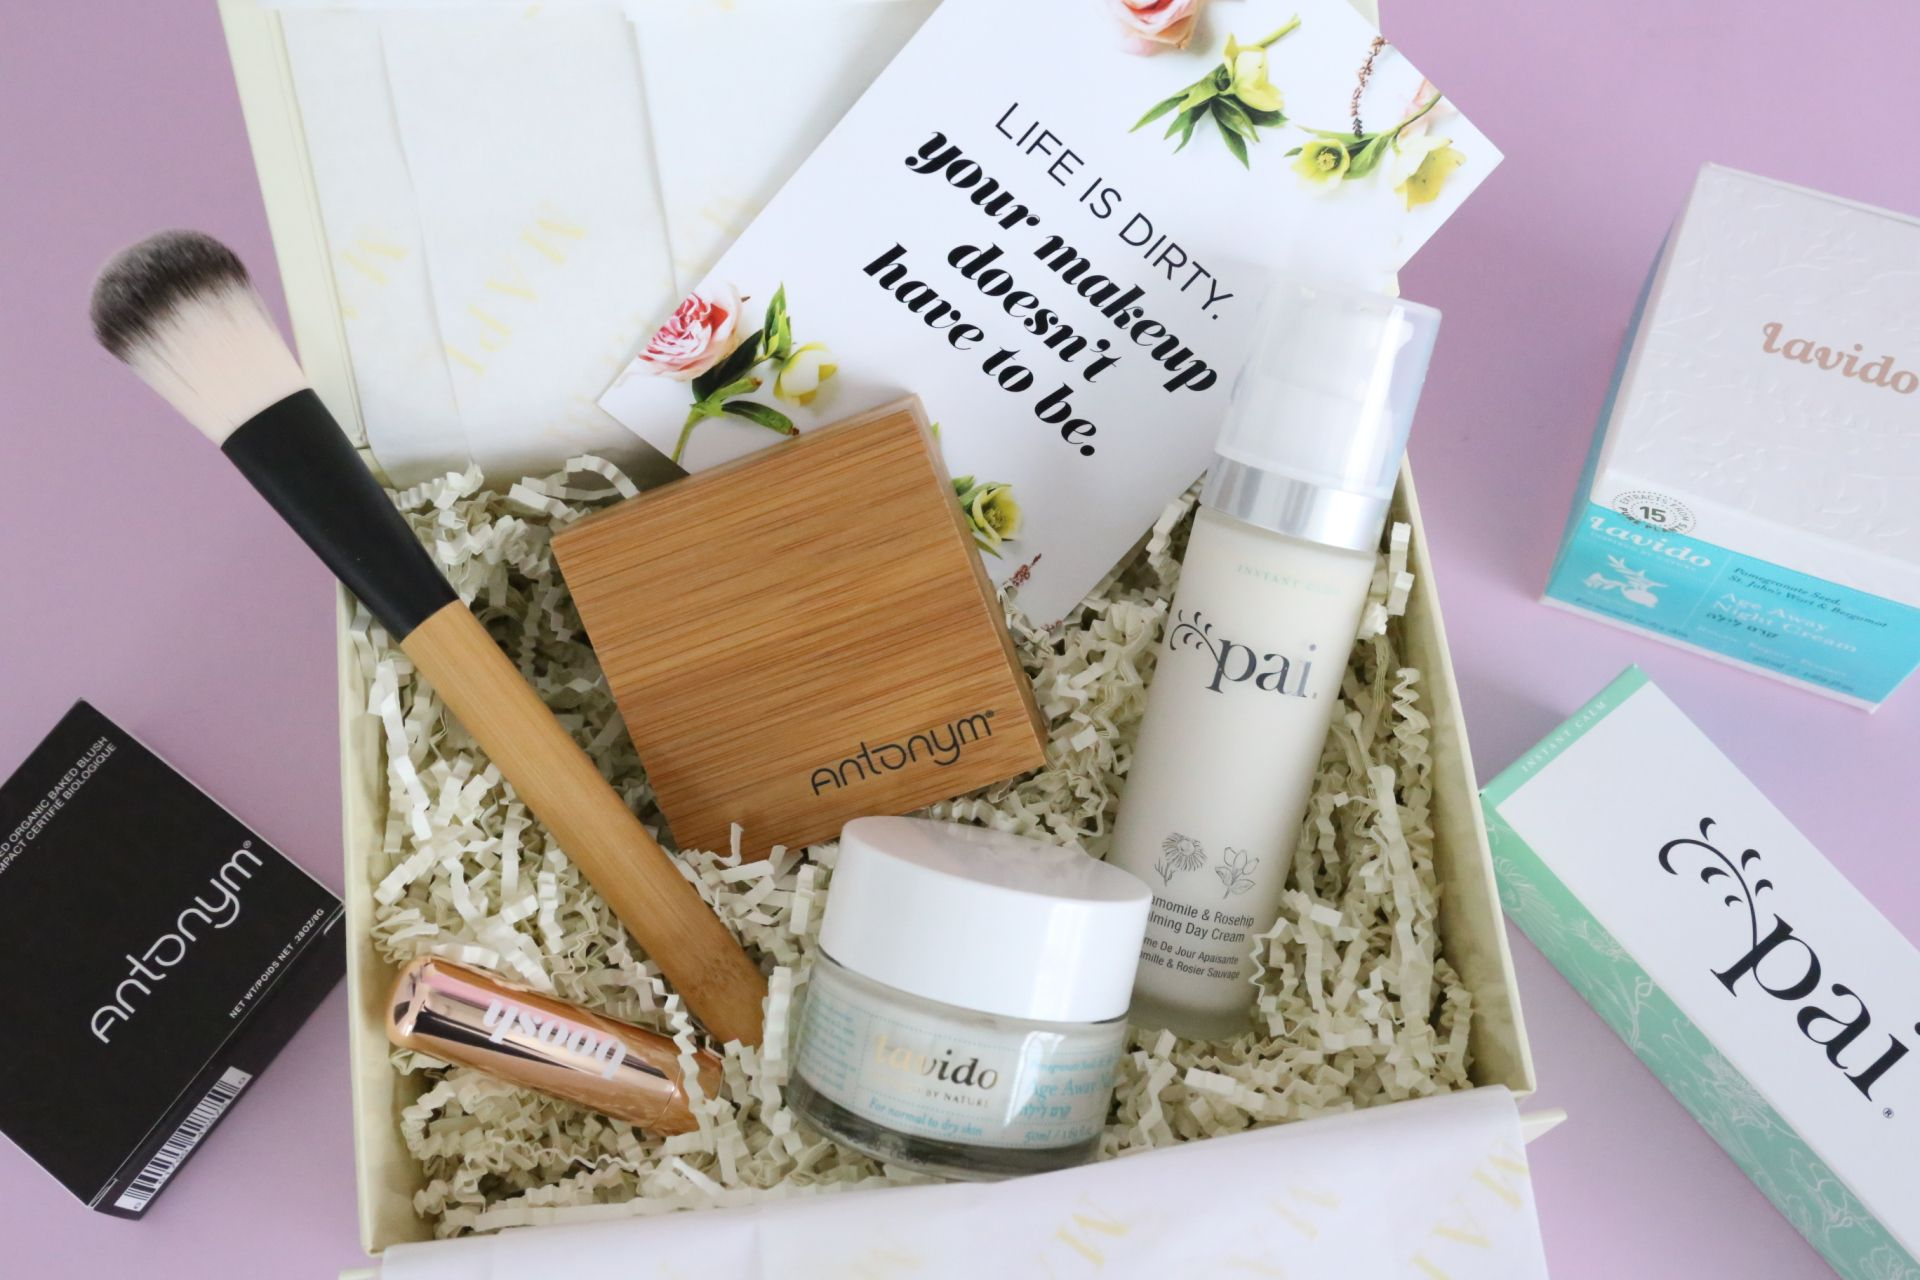 Mapleblume Review February 2018 Beauty box subscriptions